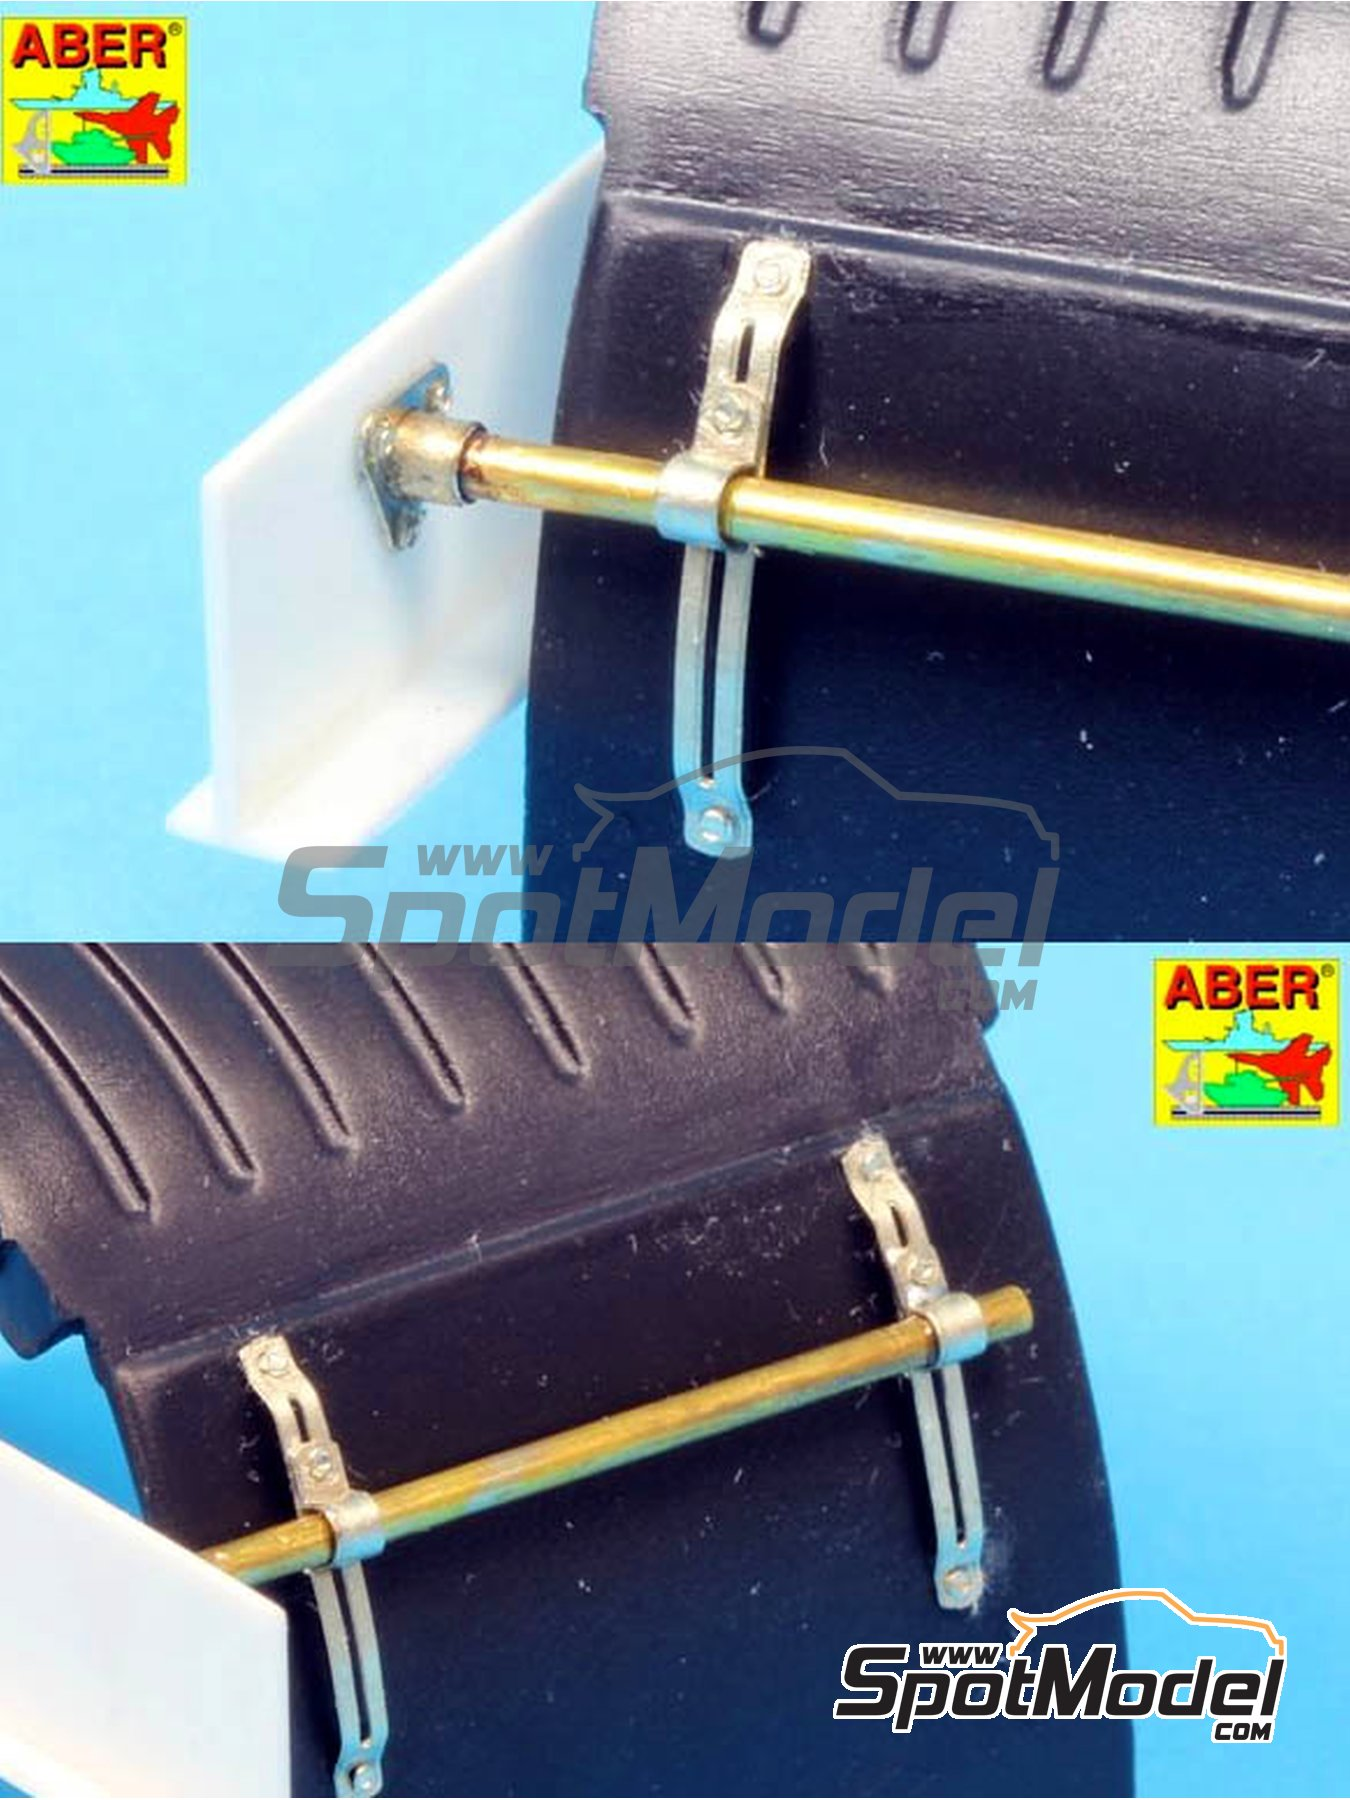 Truck fender holders | Detail in 1/24 scale manufactured by Aber (ref. 24037) image